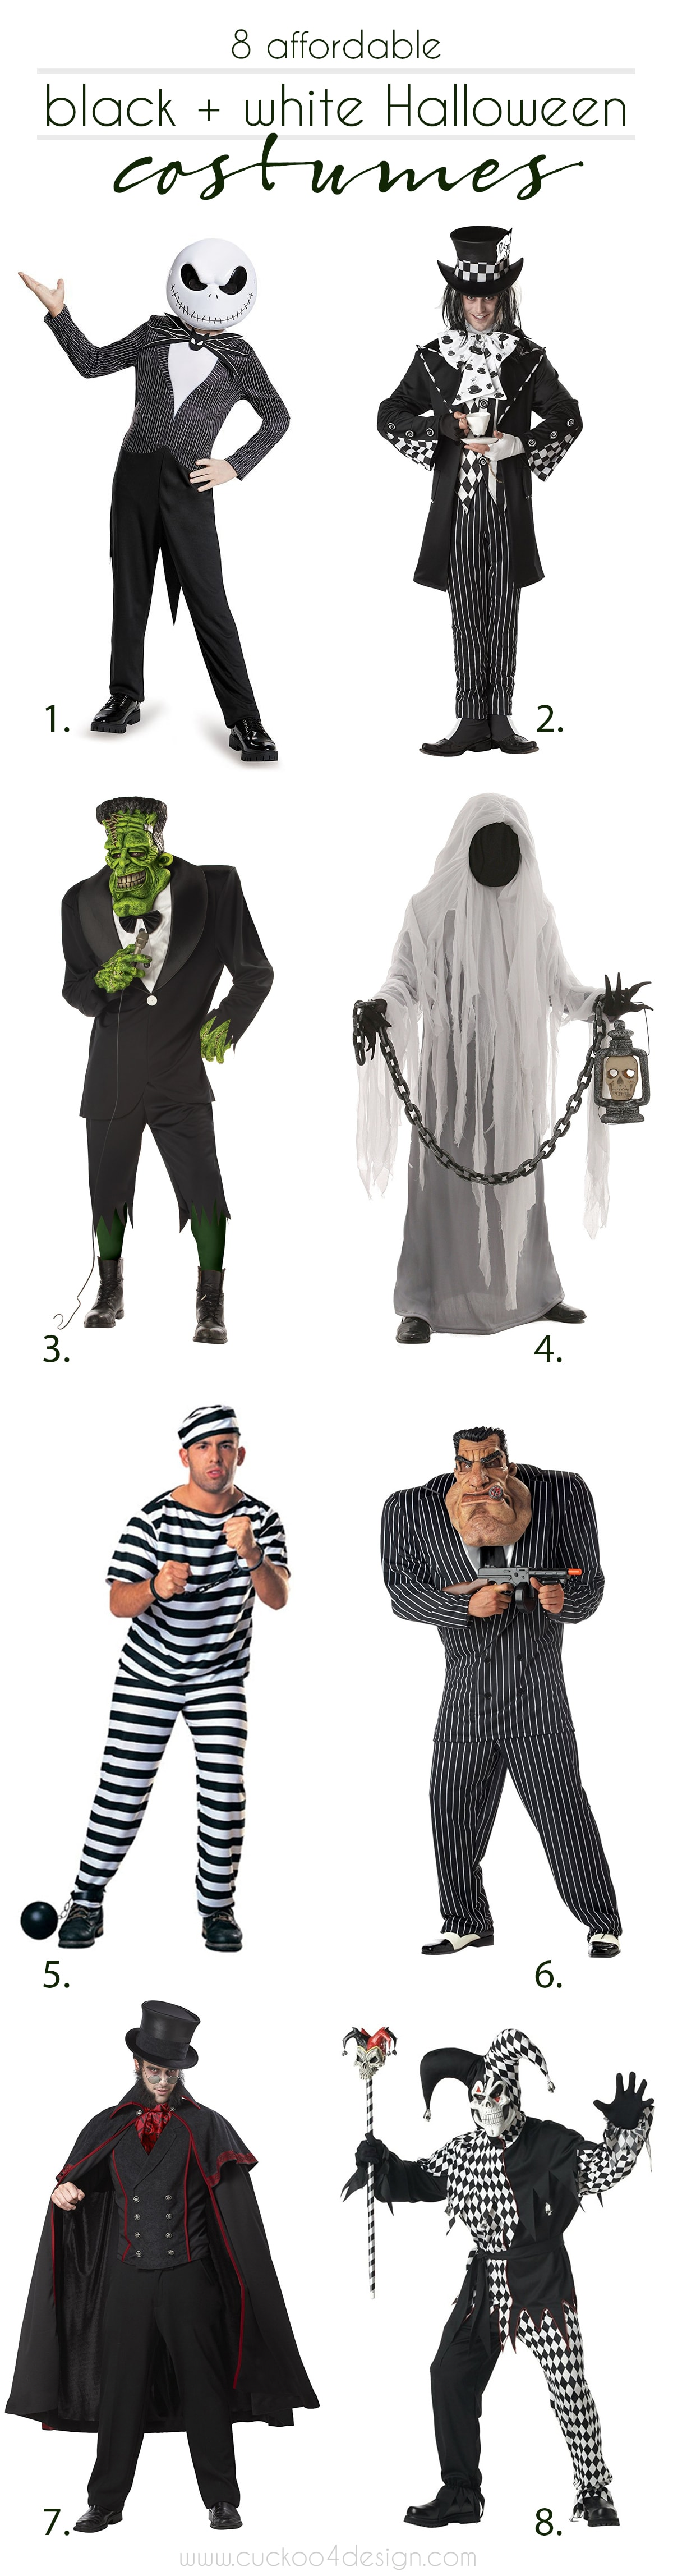 8 affordable mens black and white mens Halloween costumes